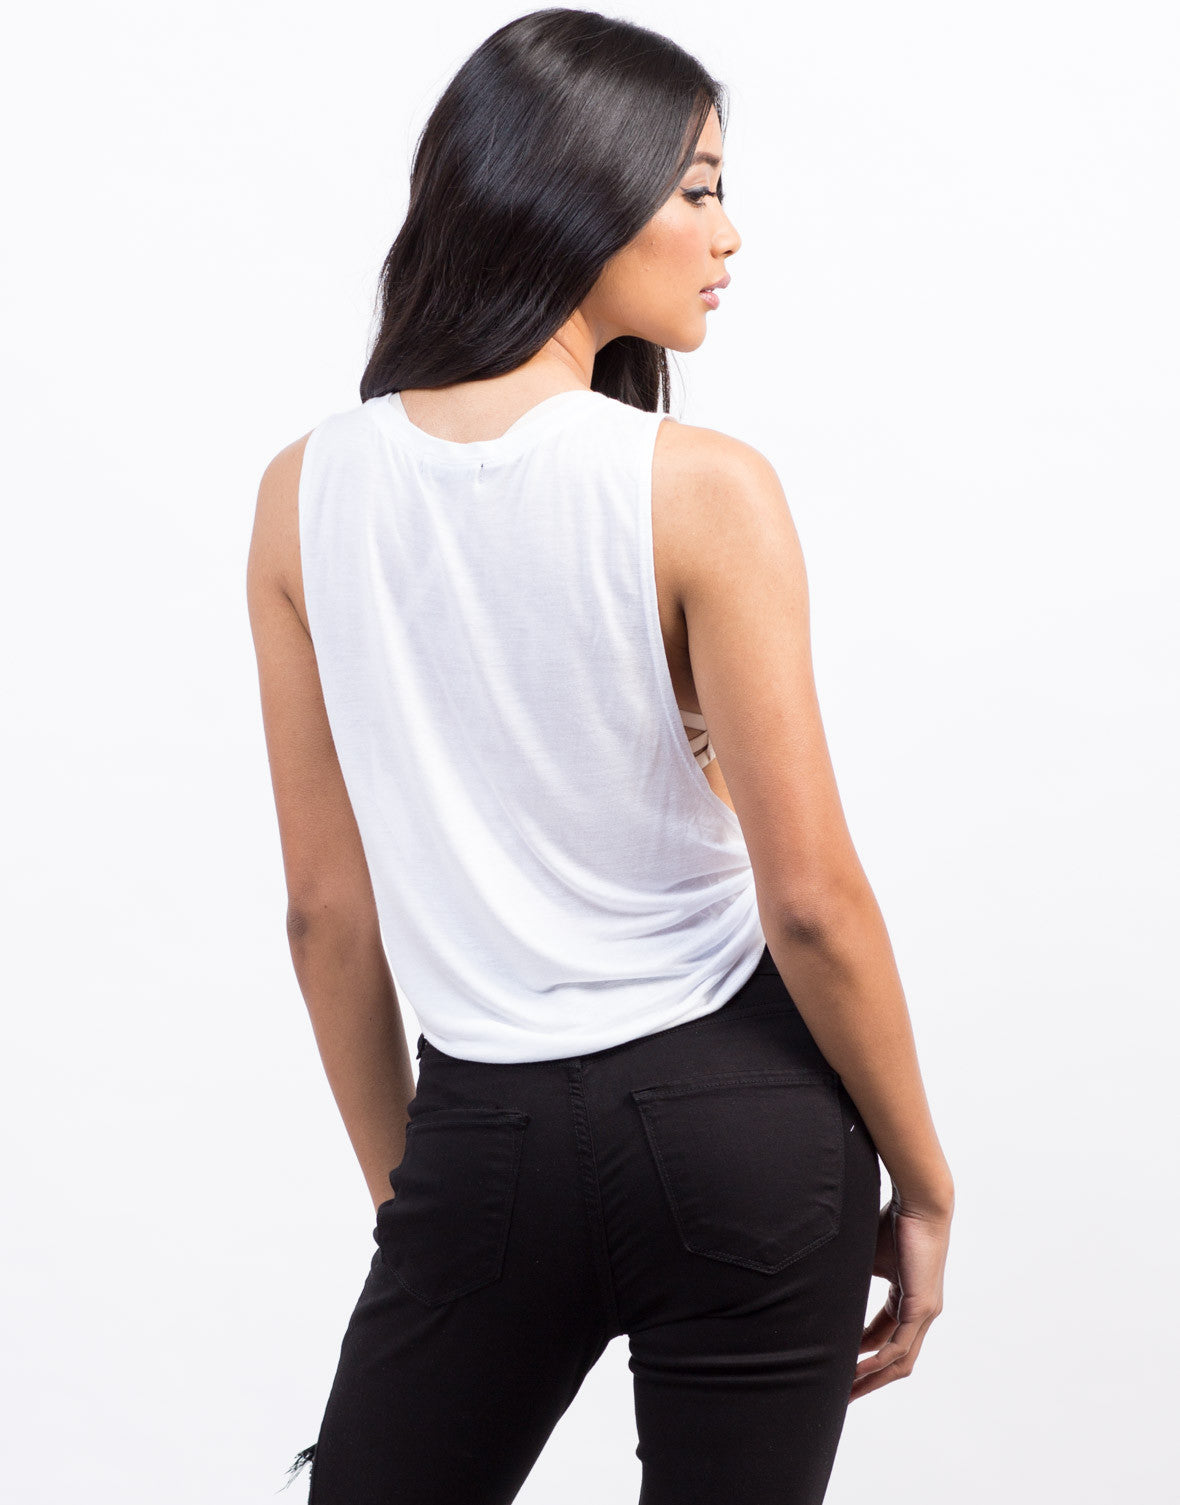 Back View of No Coffee Muscle Tee